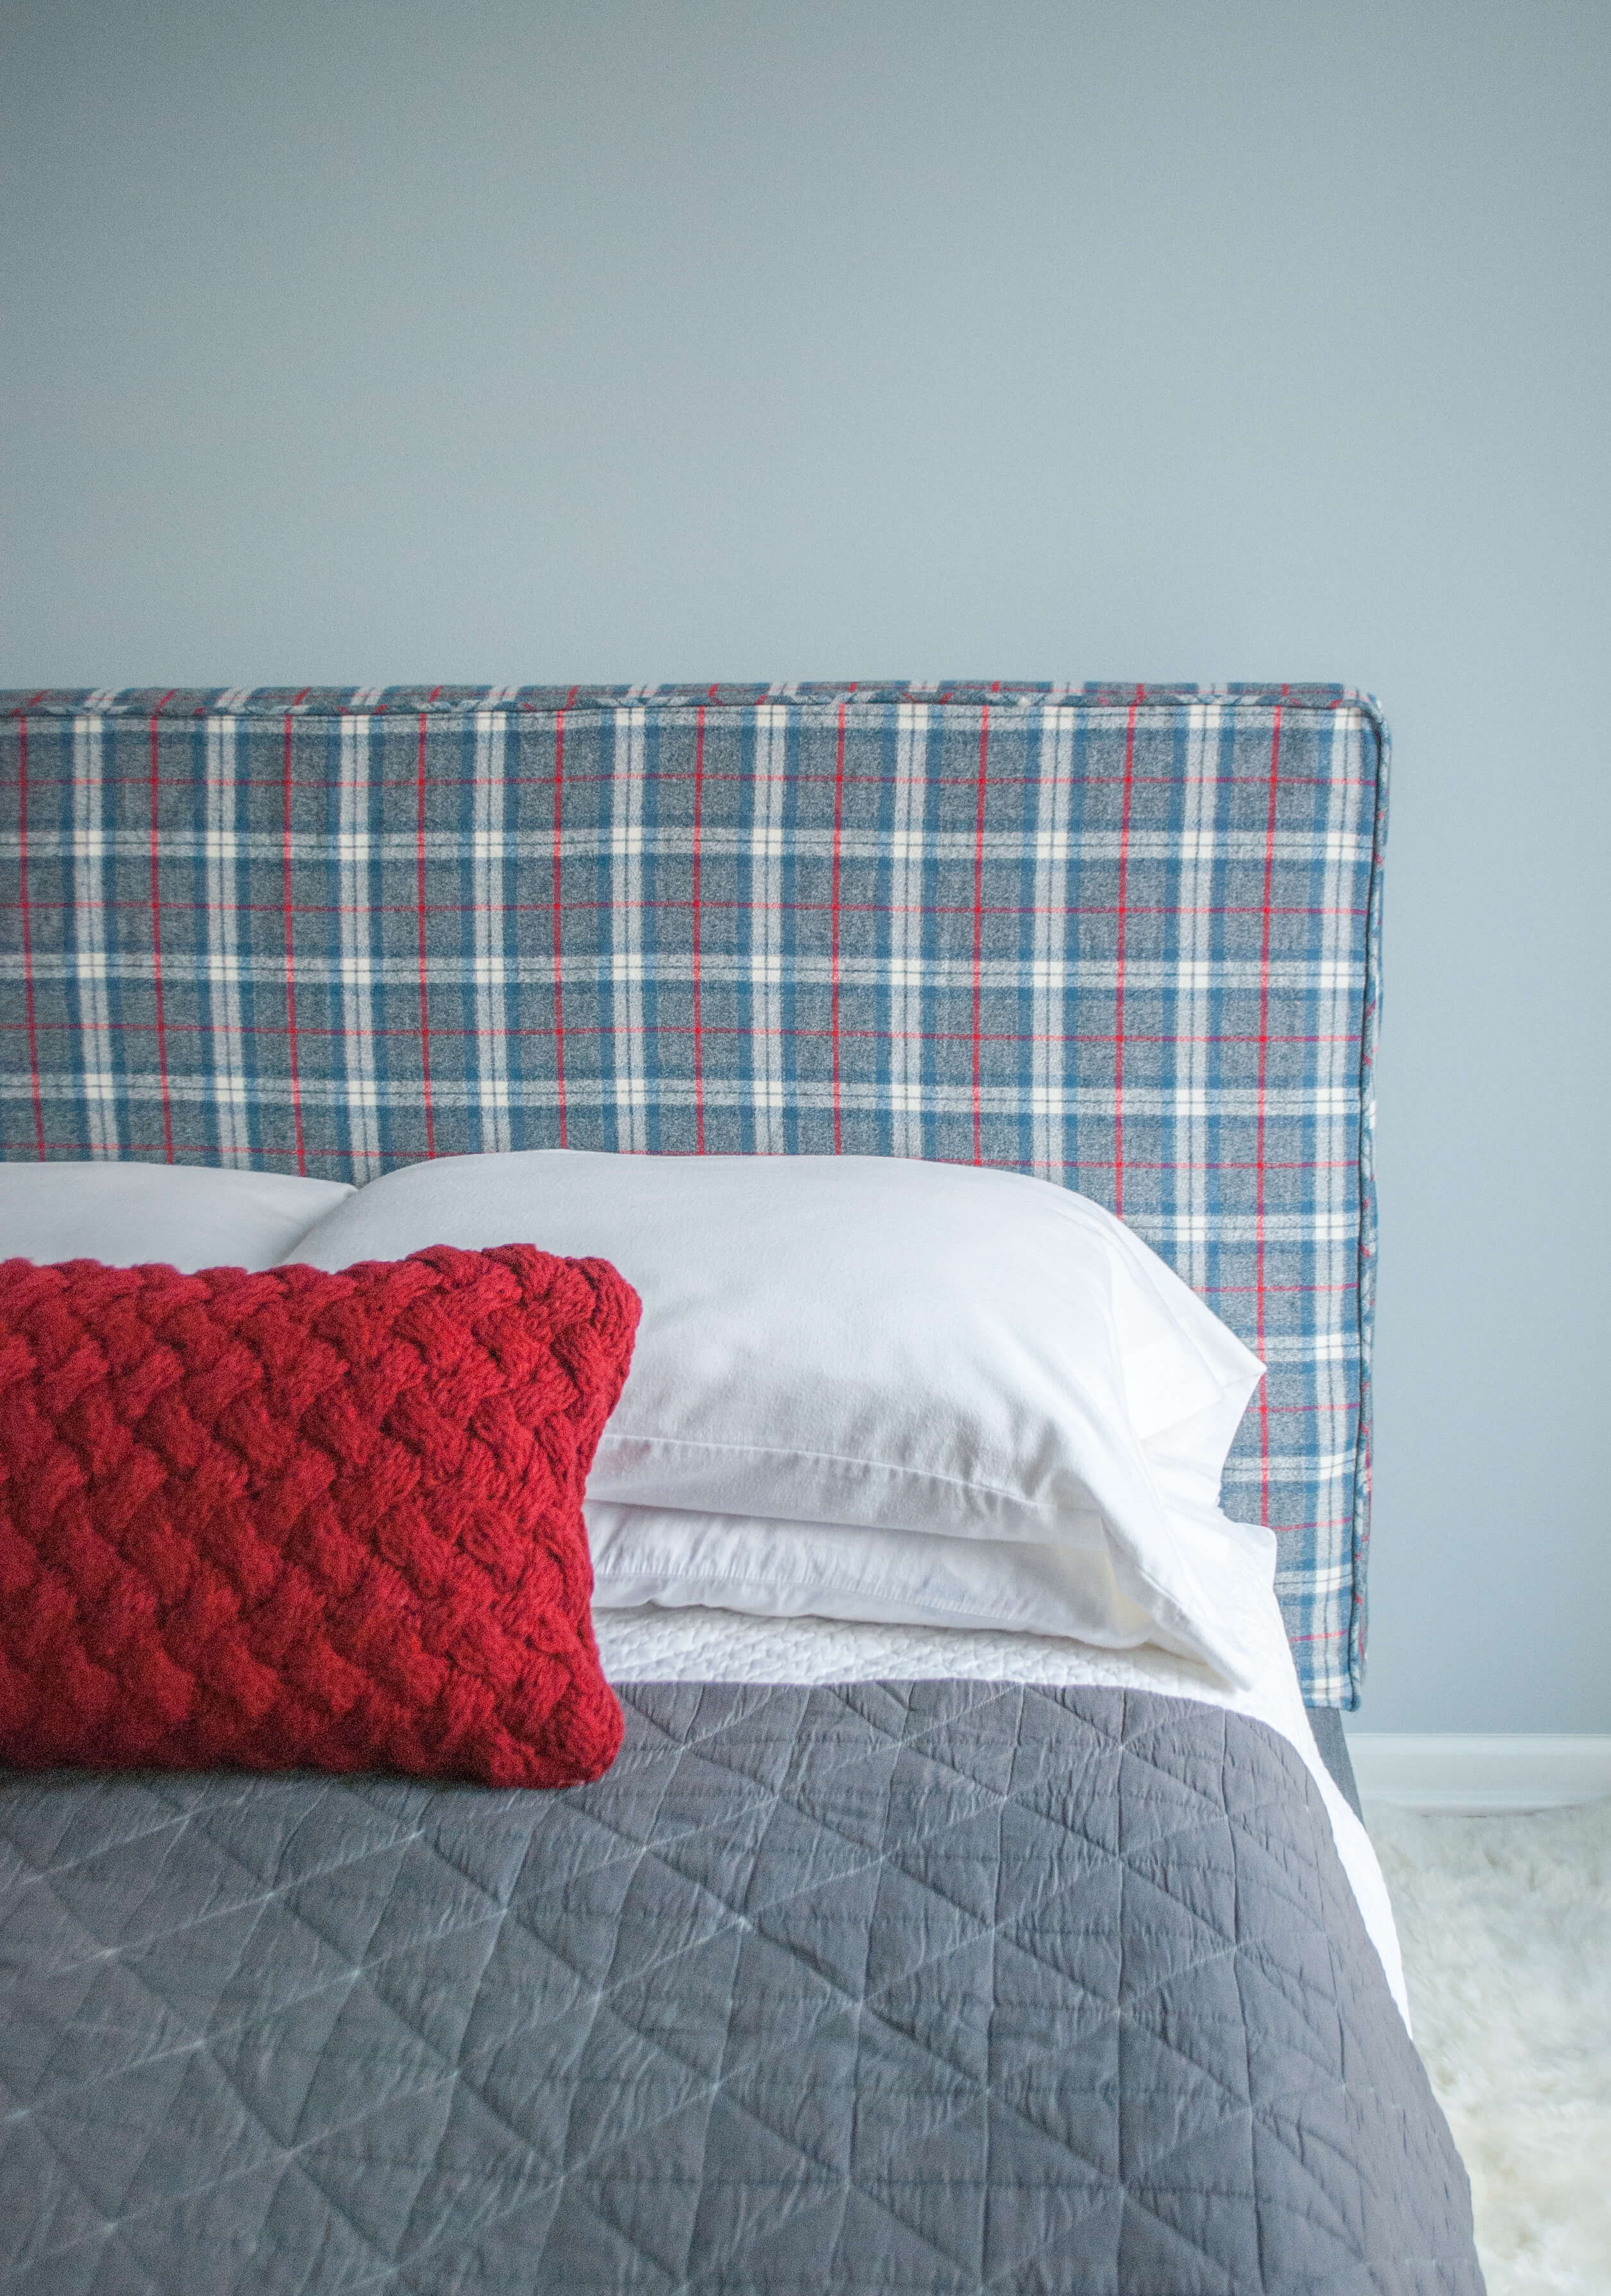 How To Make A Headboard Slipcover With No Sew Piping